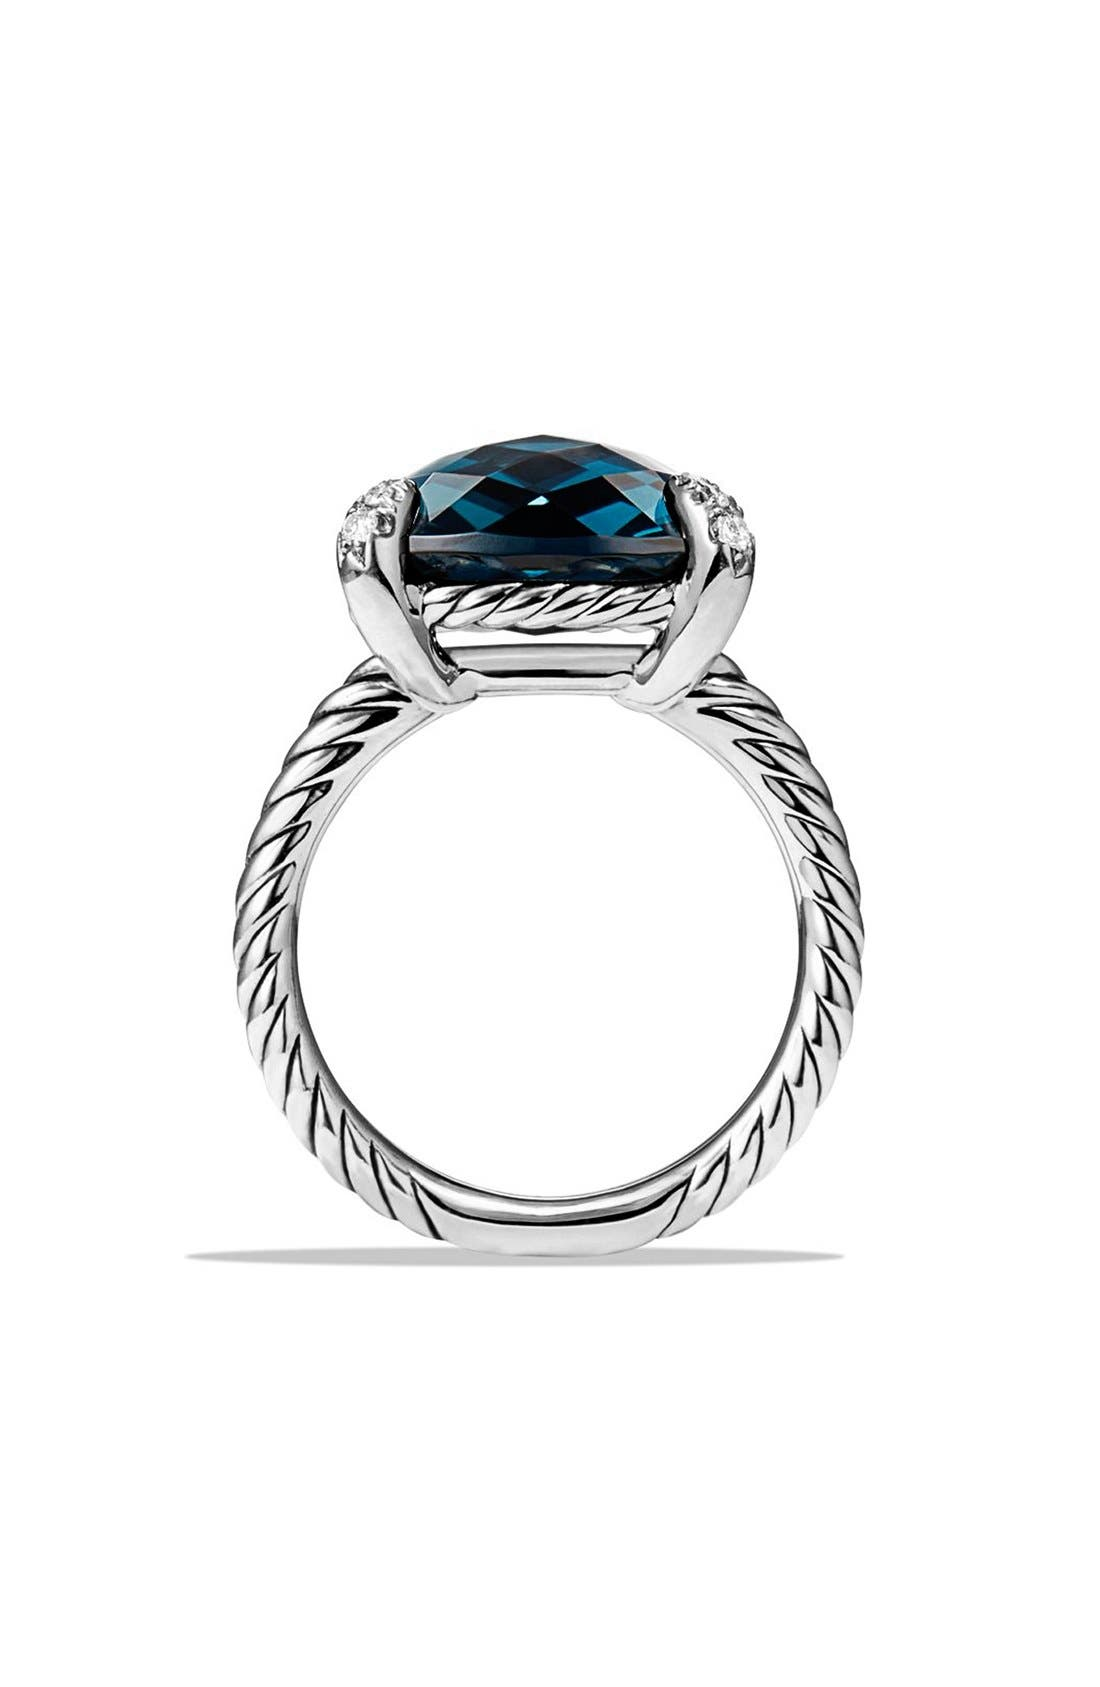 'Châtelaine' Ring with Semiprecious Stone and Diamonds,                             Alternate thumbnail 2, color,                             Silver/ Hampton Blue Topaz